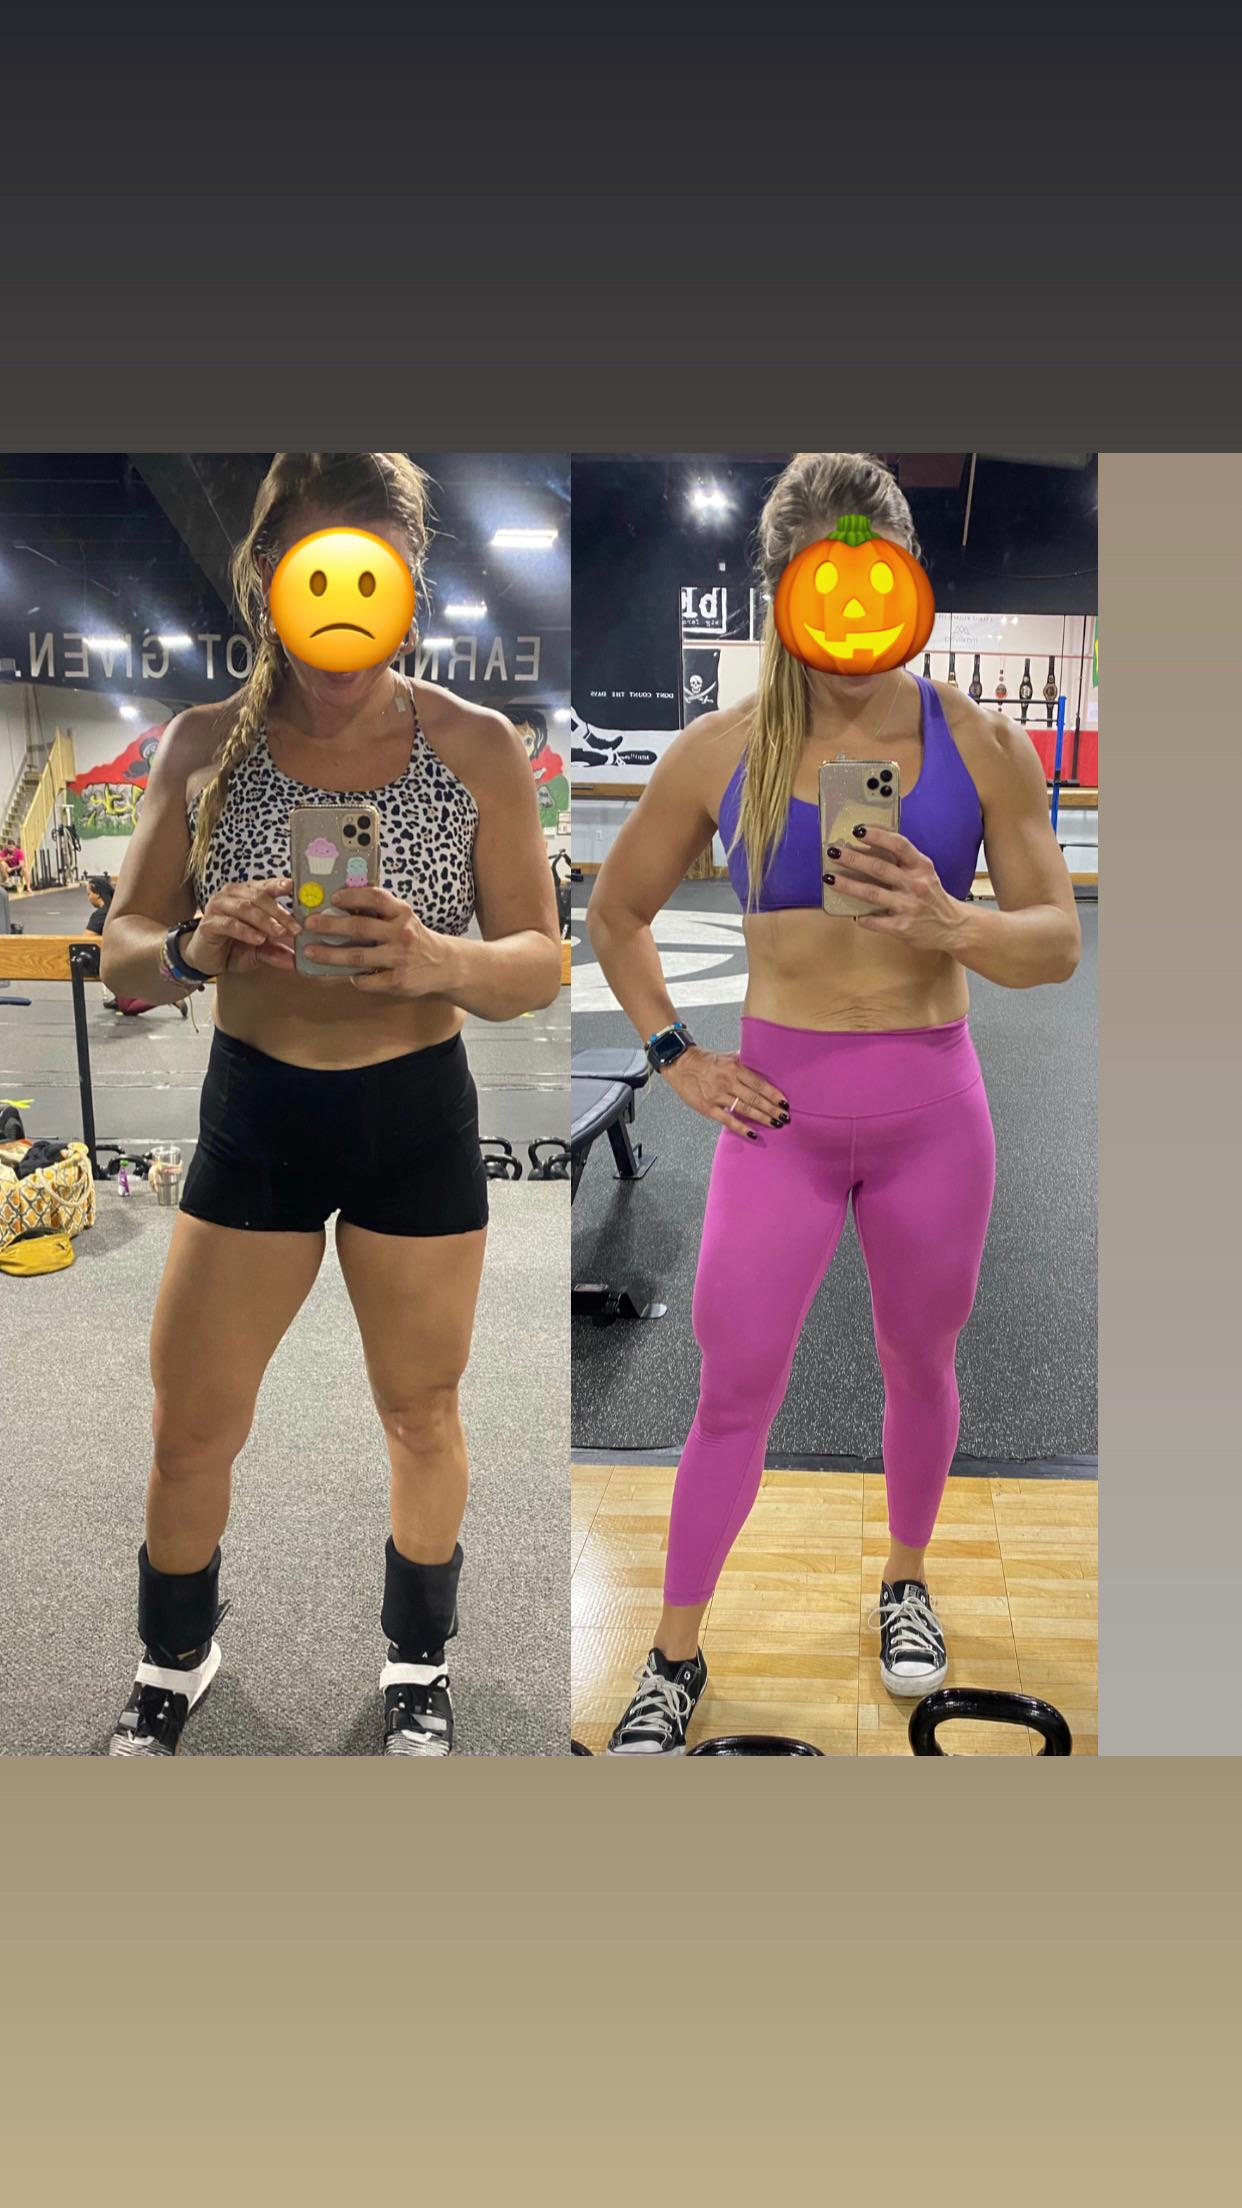 16 lbs Fat Loss Before and After 5 feet 8 Female 180 lbs to 164 lbs